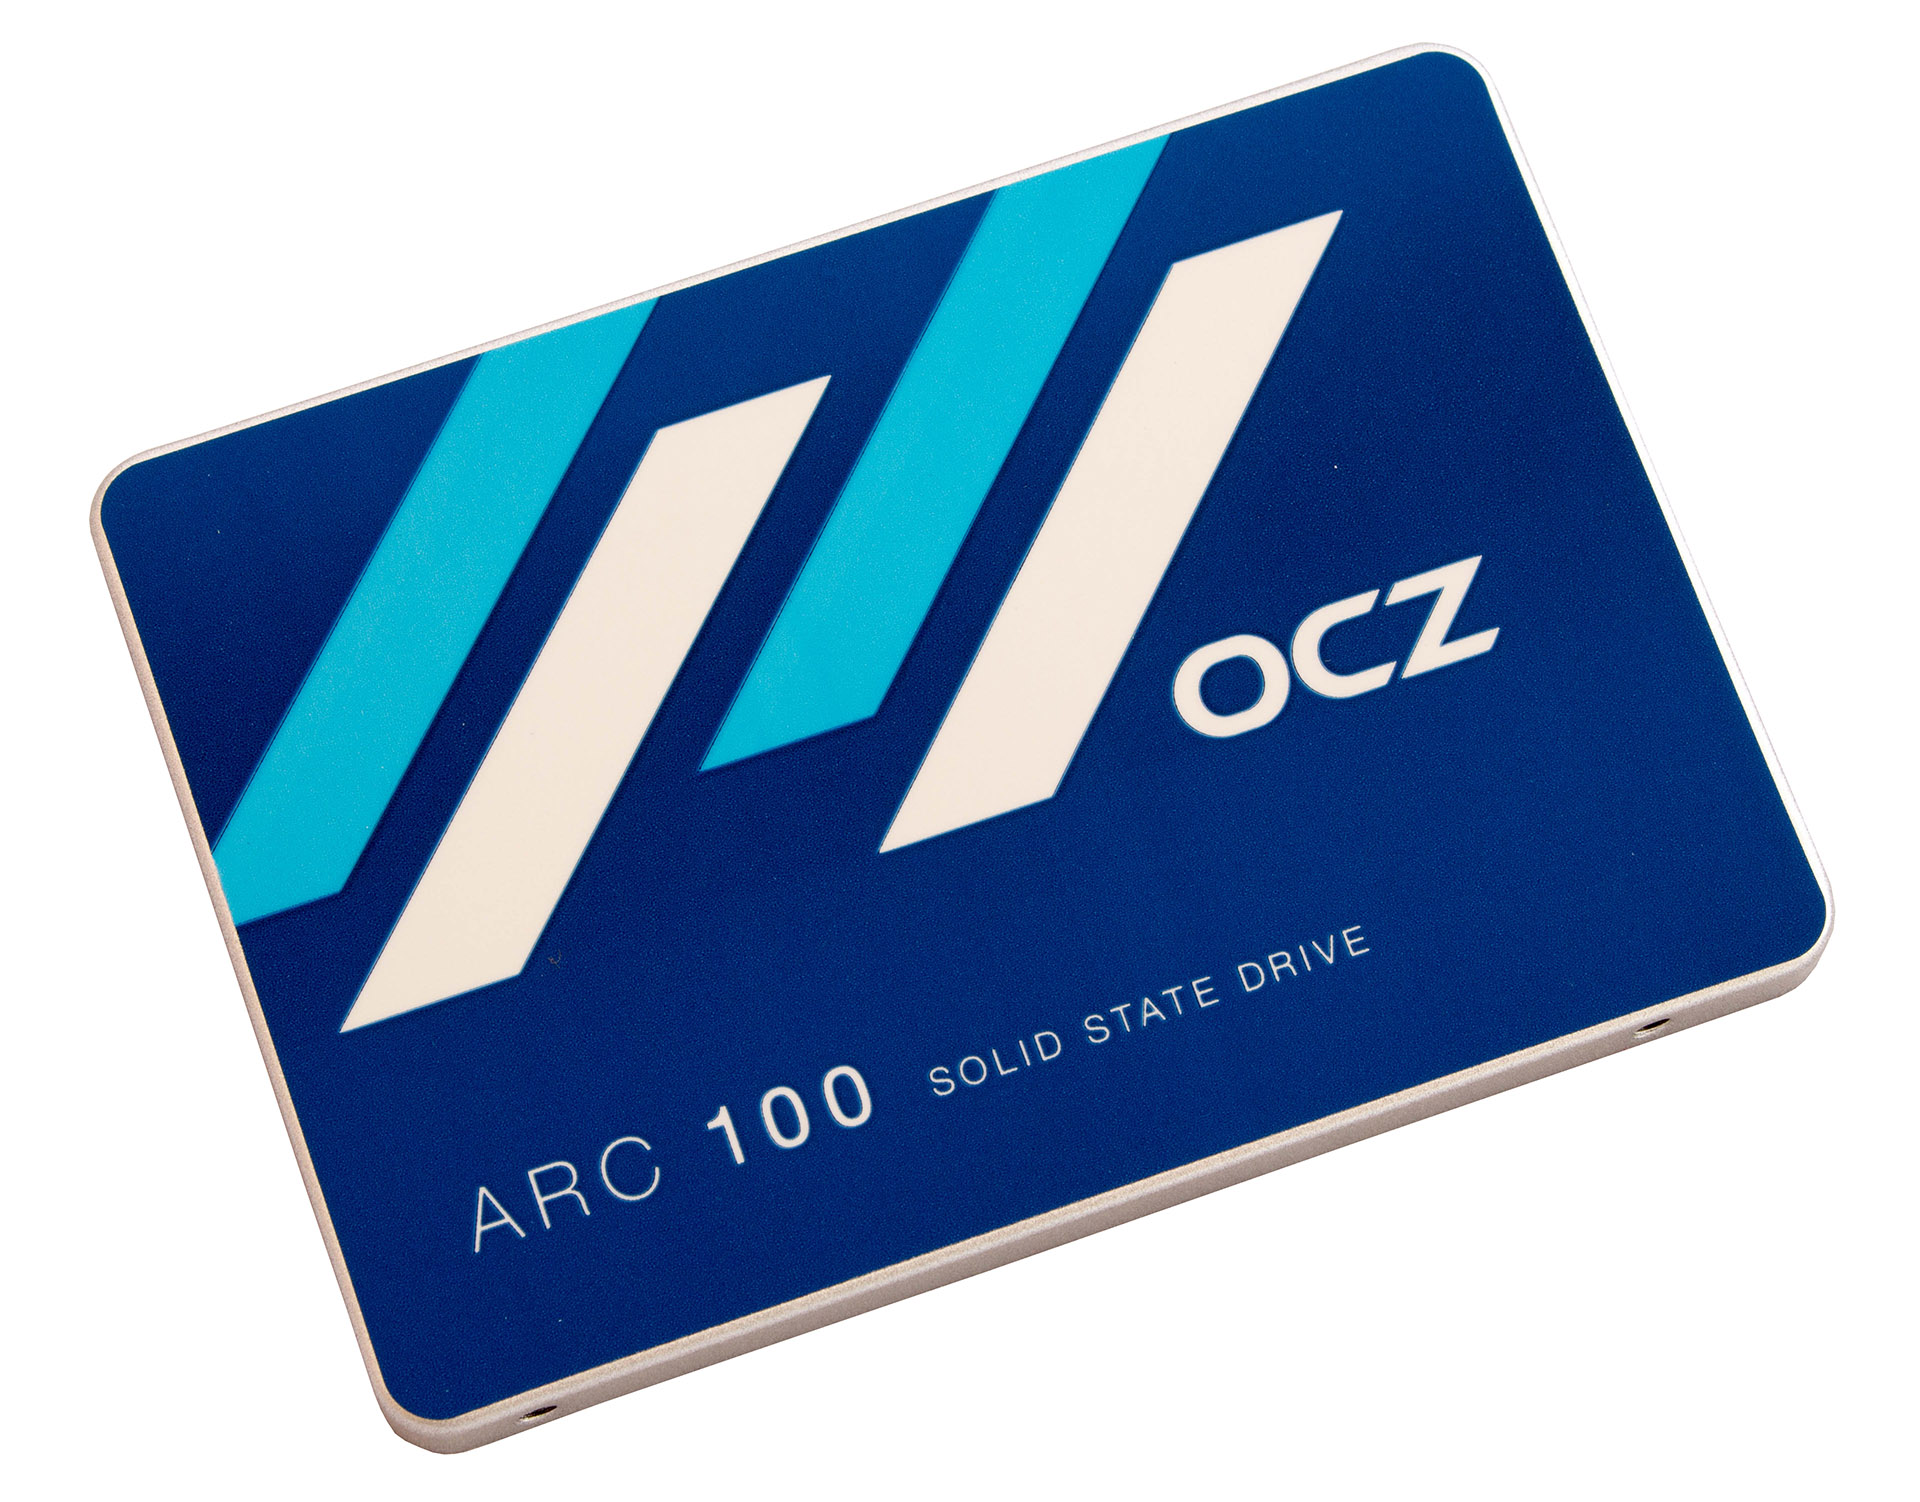 OCZ ARC 100 240GB test